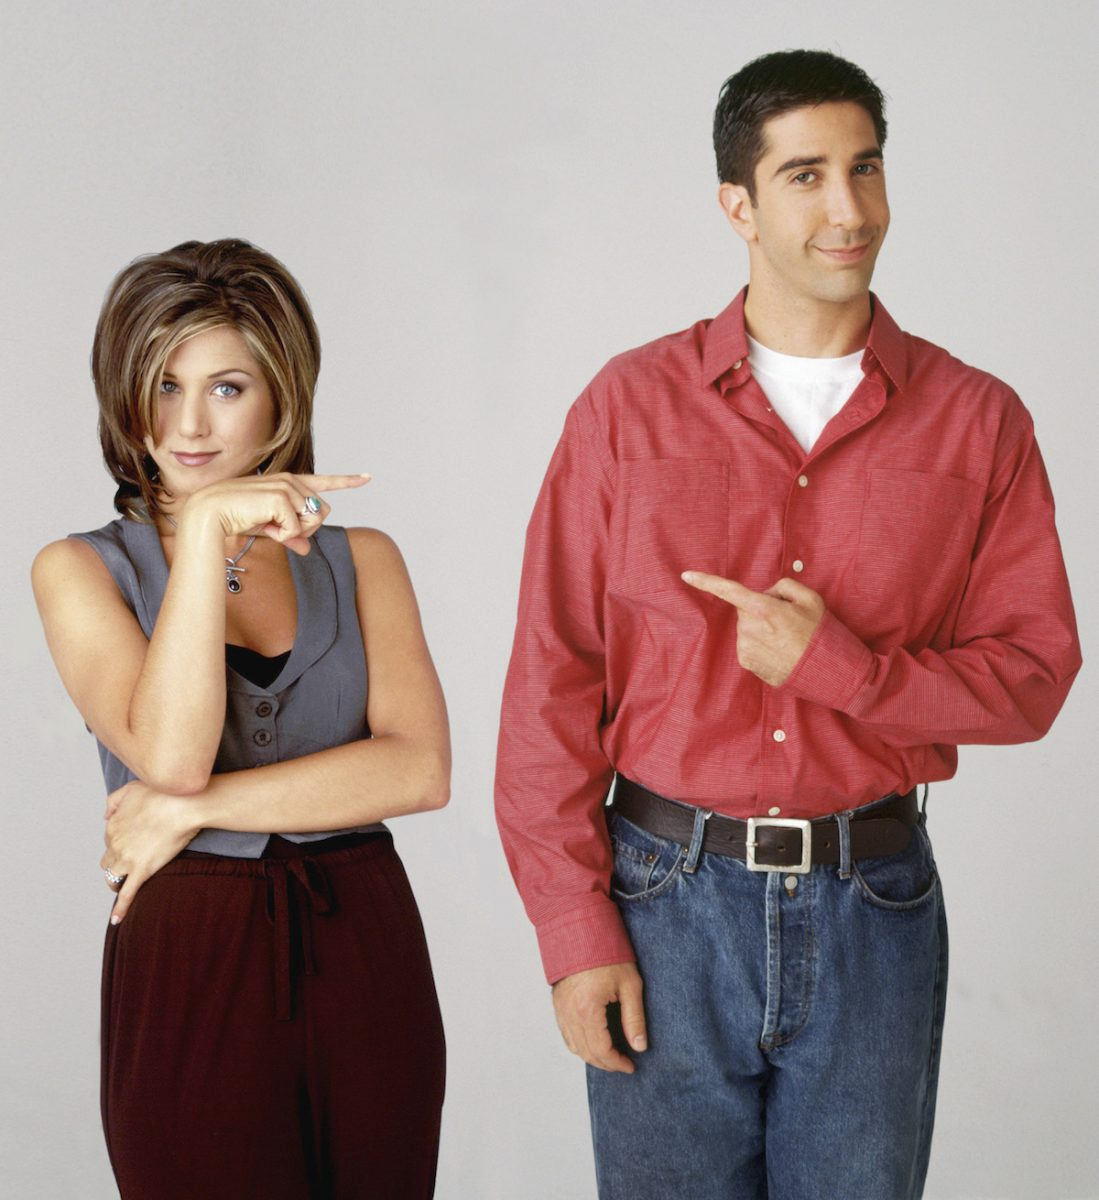 Jennifer Aniston and David Schwimmer stand facing the camera and smiling while pointing at each other.